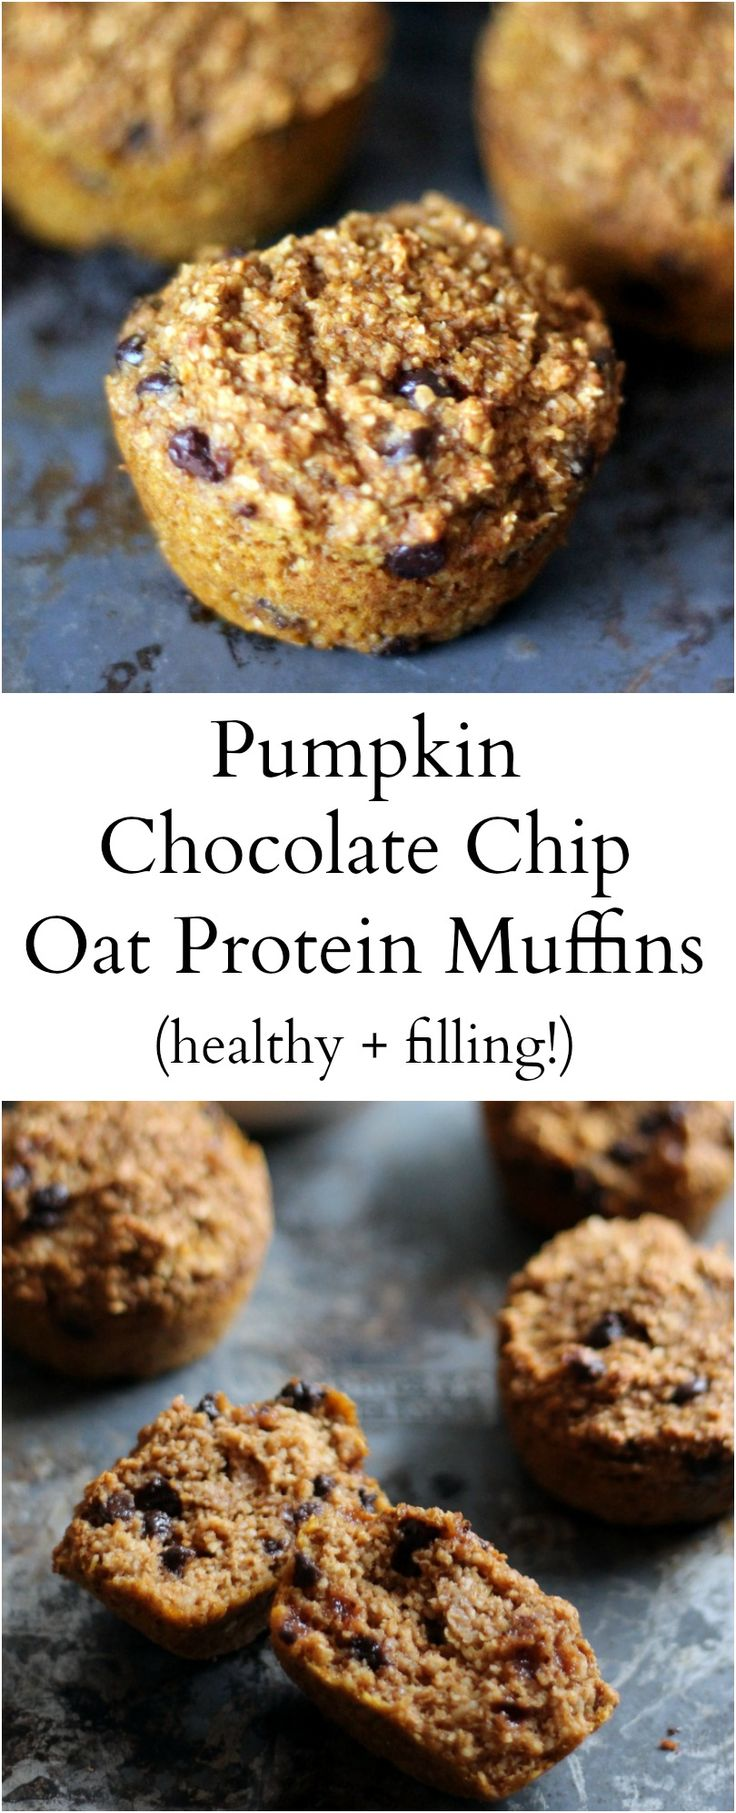 Healthy pumpkin oat bran muffins made with protein powder and greek yogurt to help keep you full! These muffins are delicious!